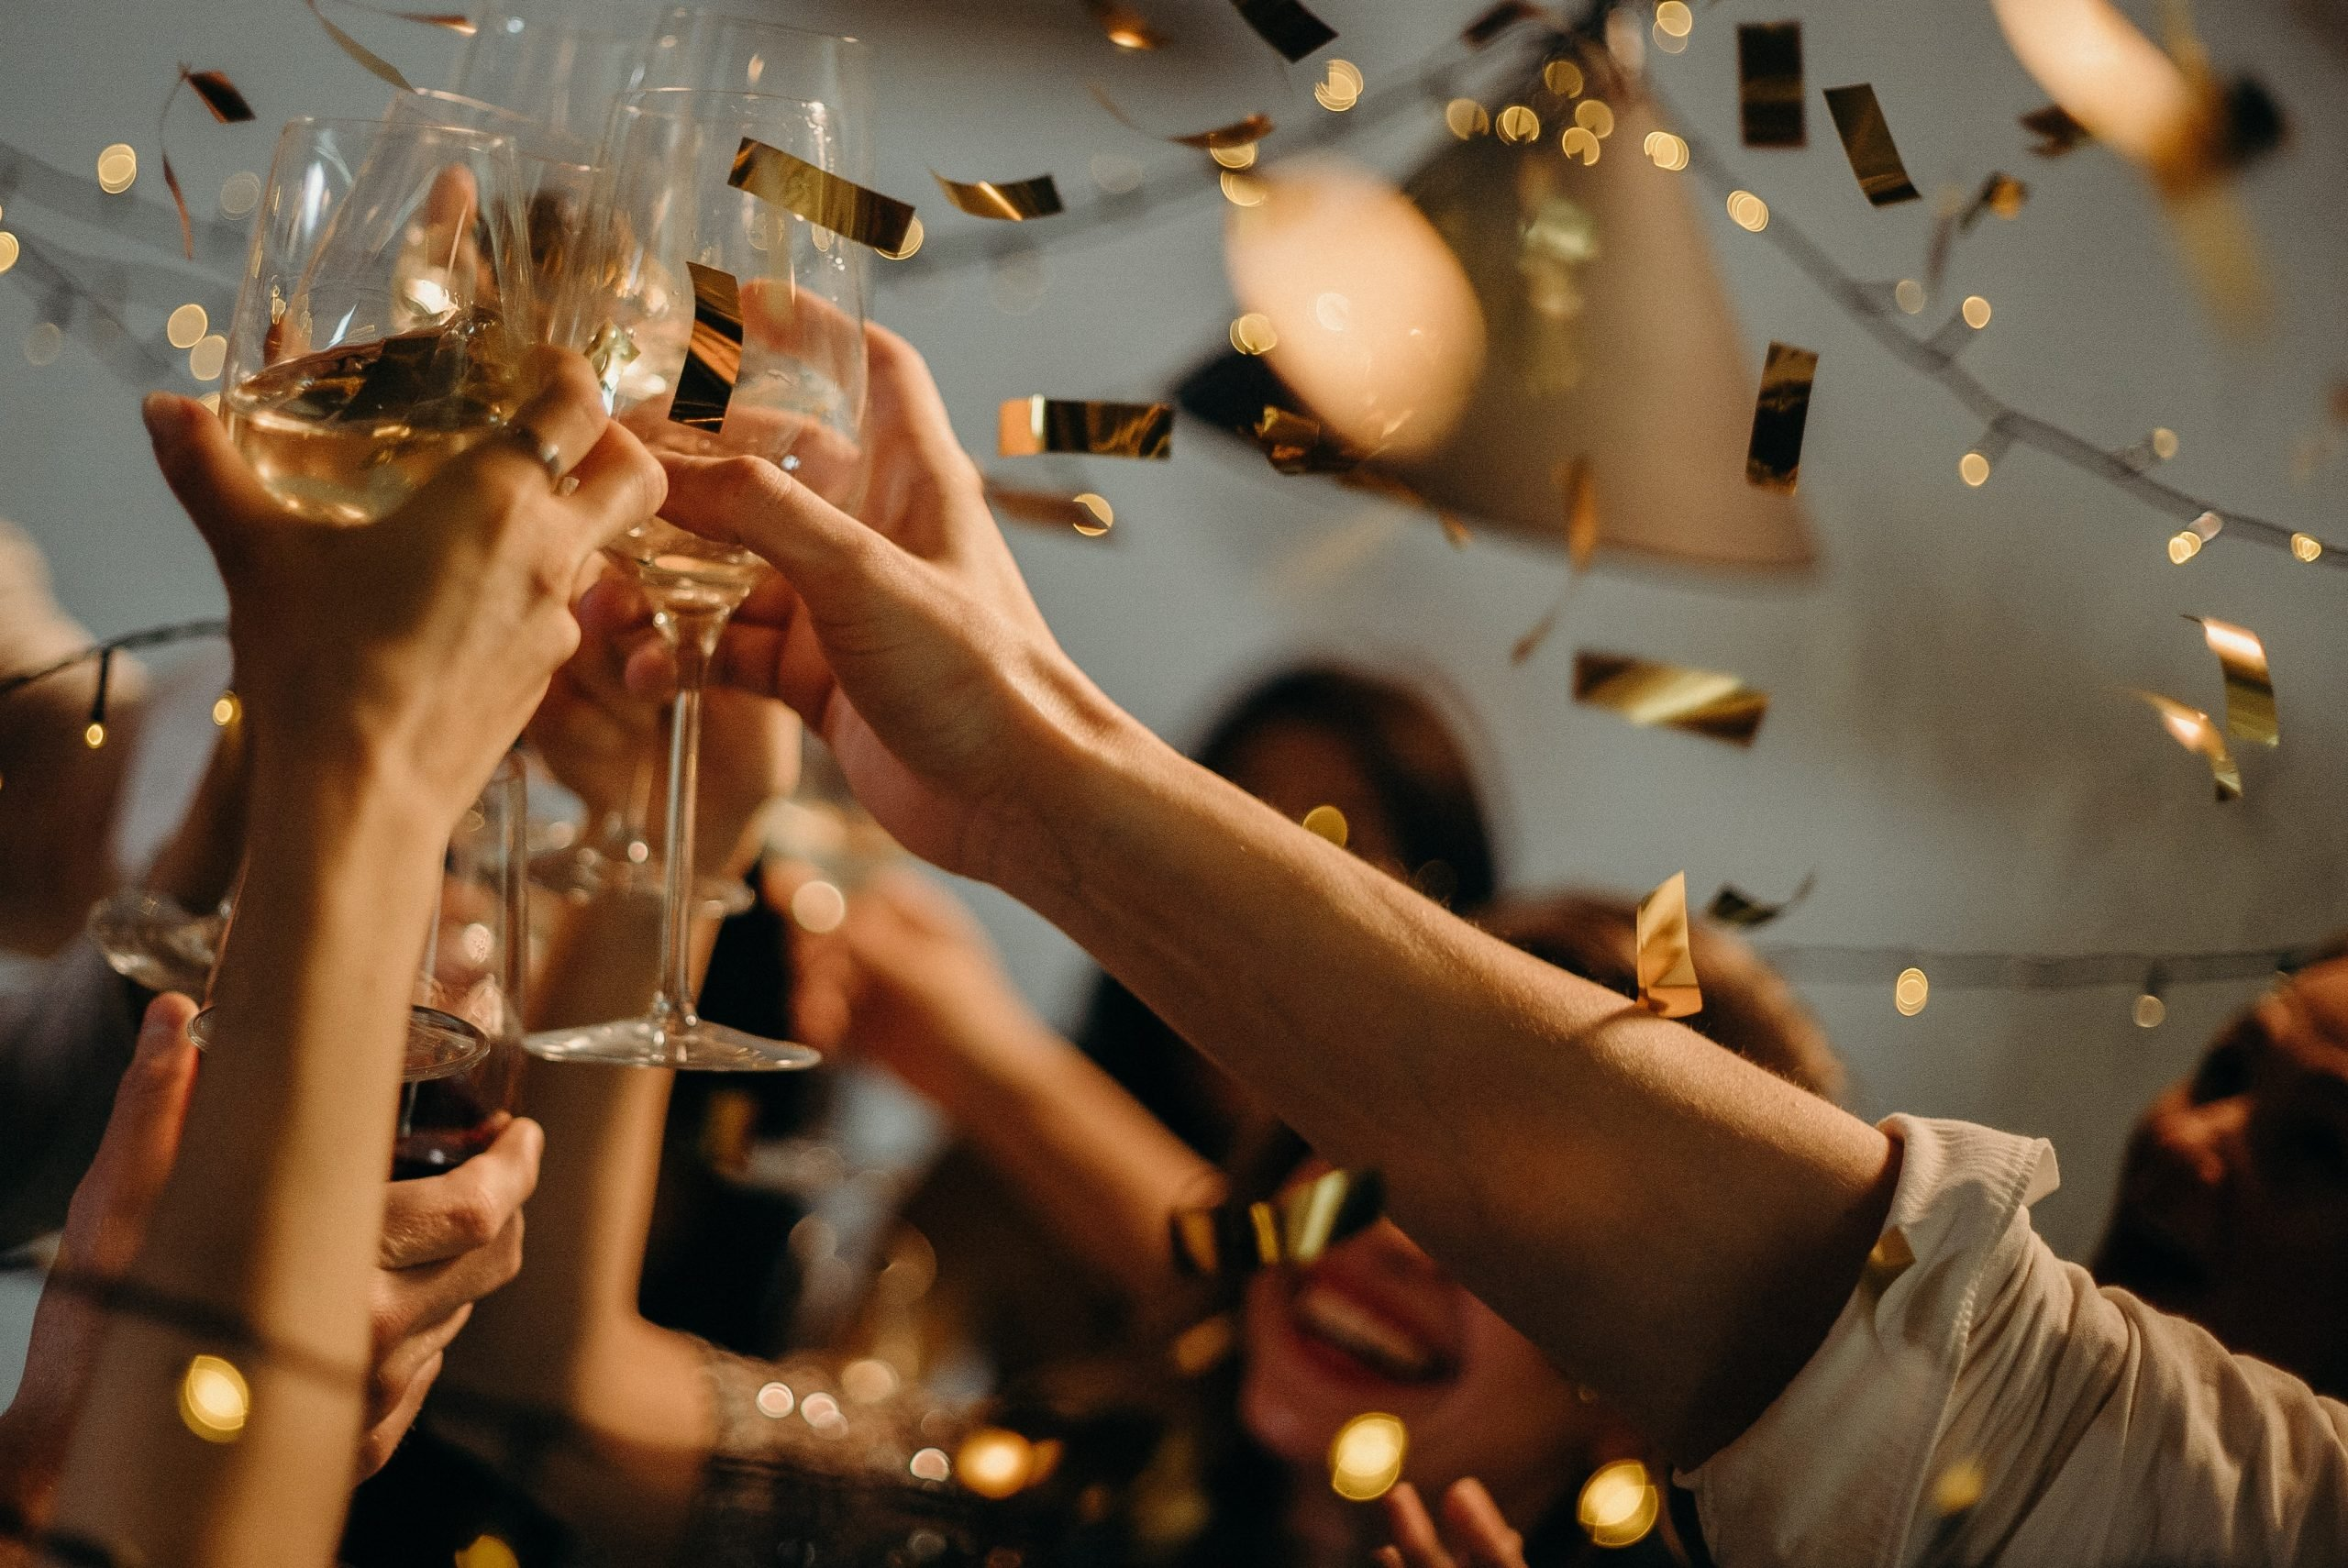 People cheering with wine glasses with gold confetti in the air